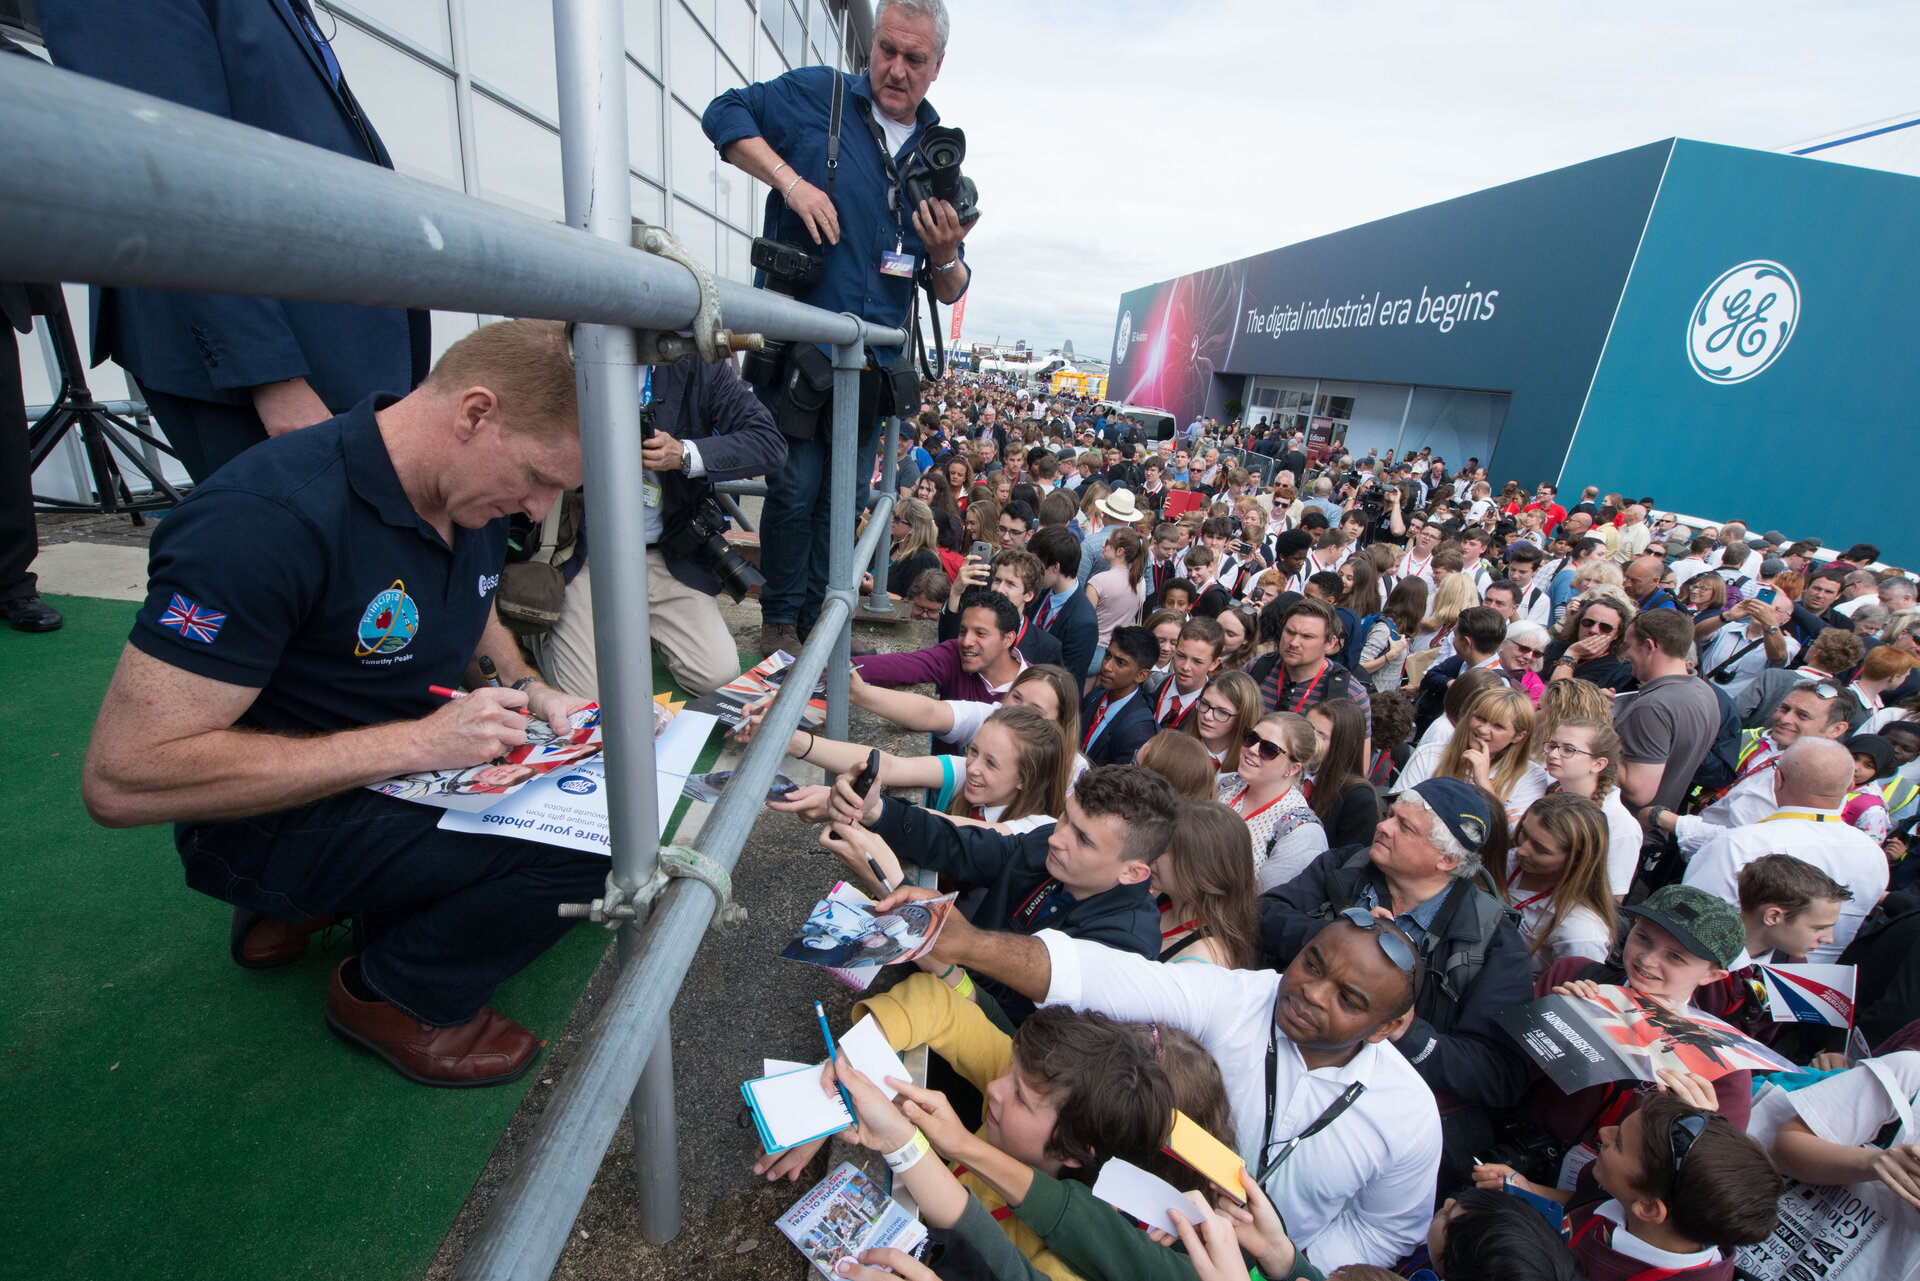 Tim Peake on the Media Centre balcony at Farnborough Airshow 2016